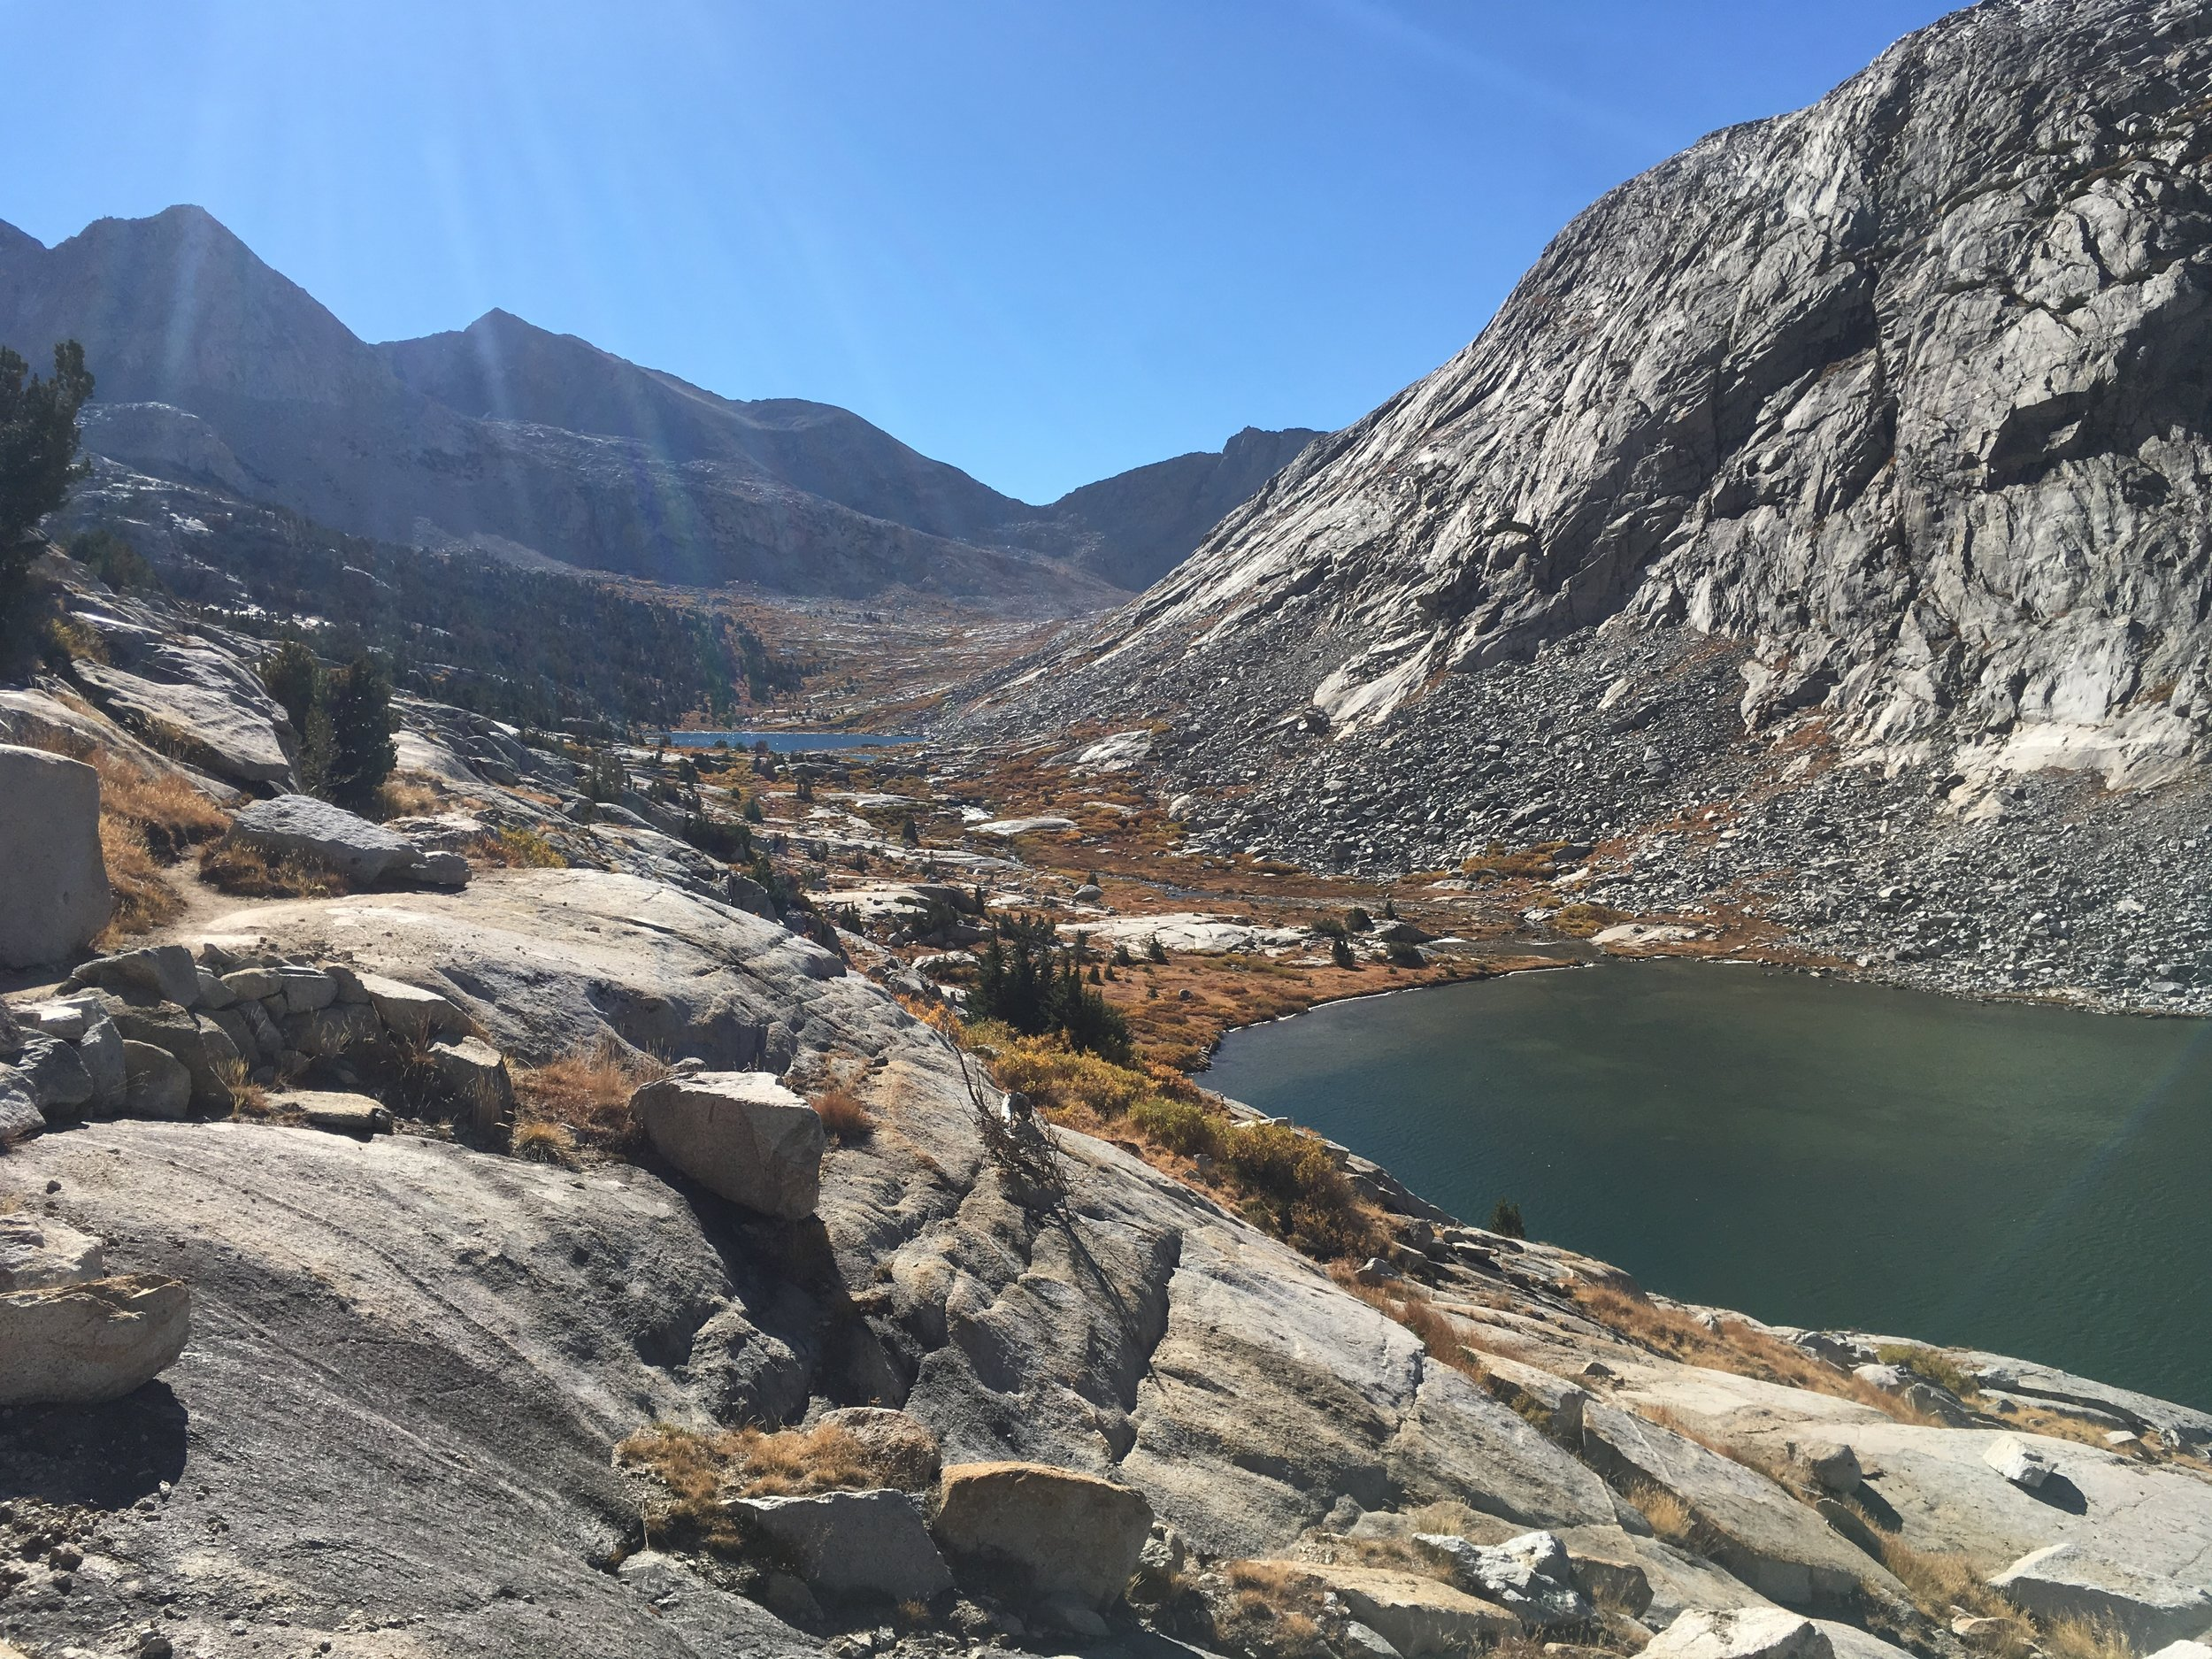 Upper Palisade Lake with a view up to Mather Pass.